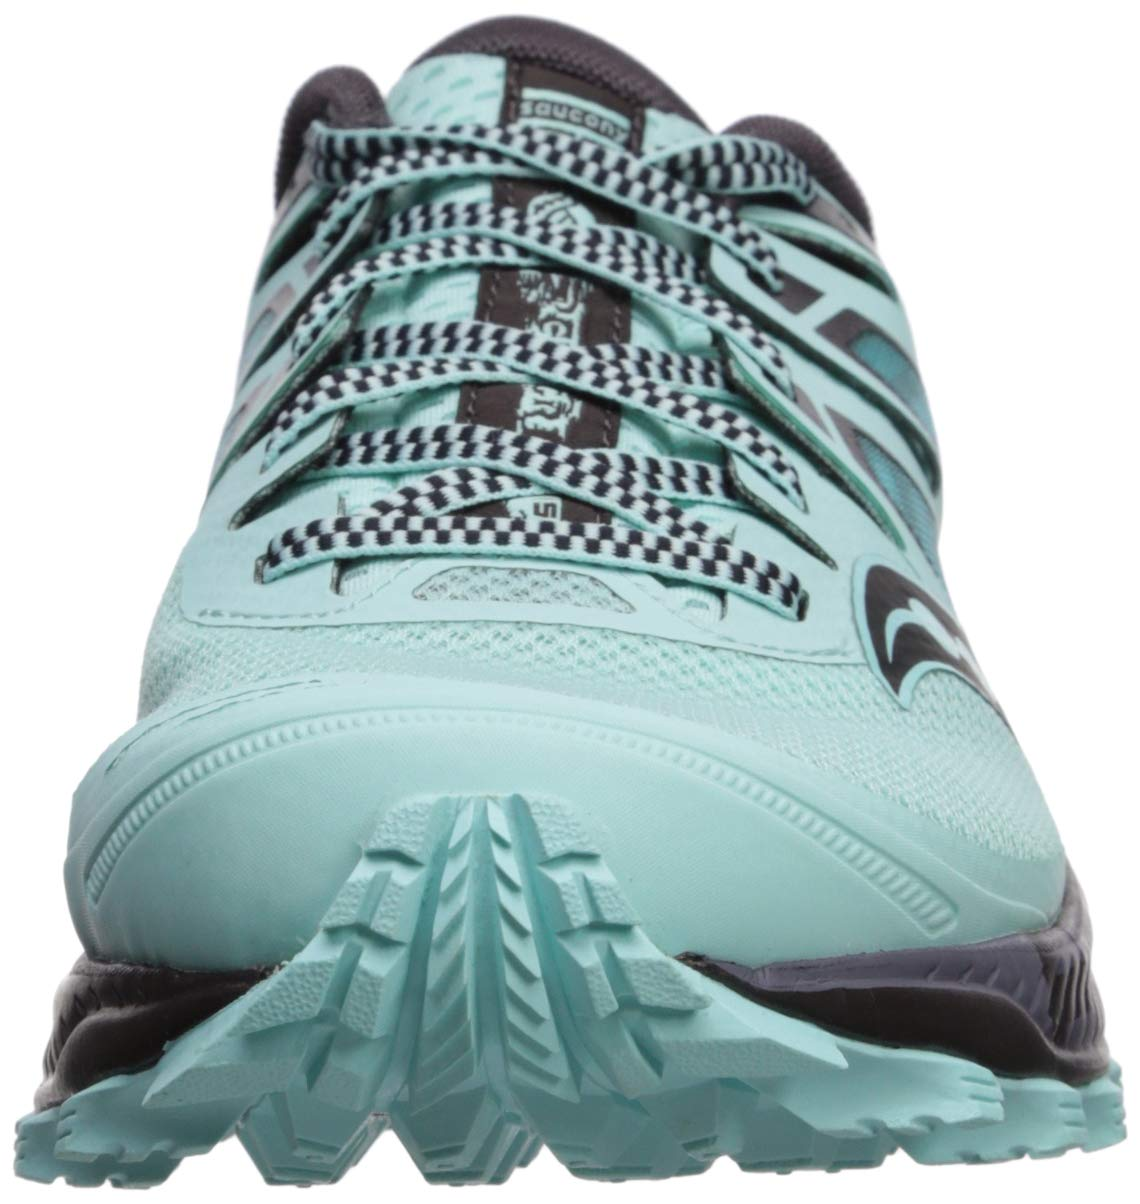 Saucony Women's Peregrine ISO Trail Running Shoe, Aqua/Grey, 5 M US by Saucony (Image #4)